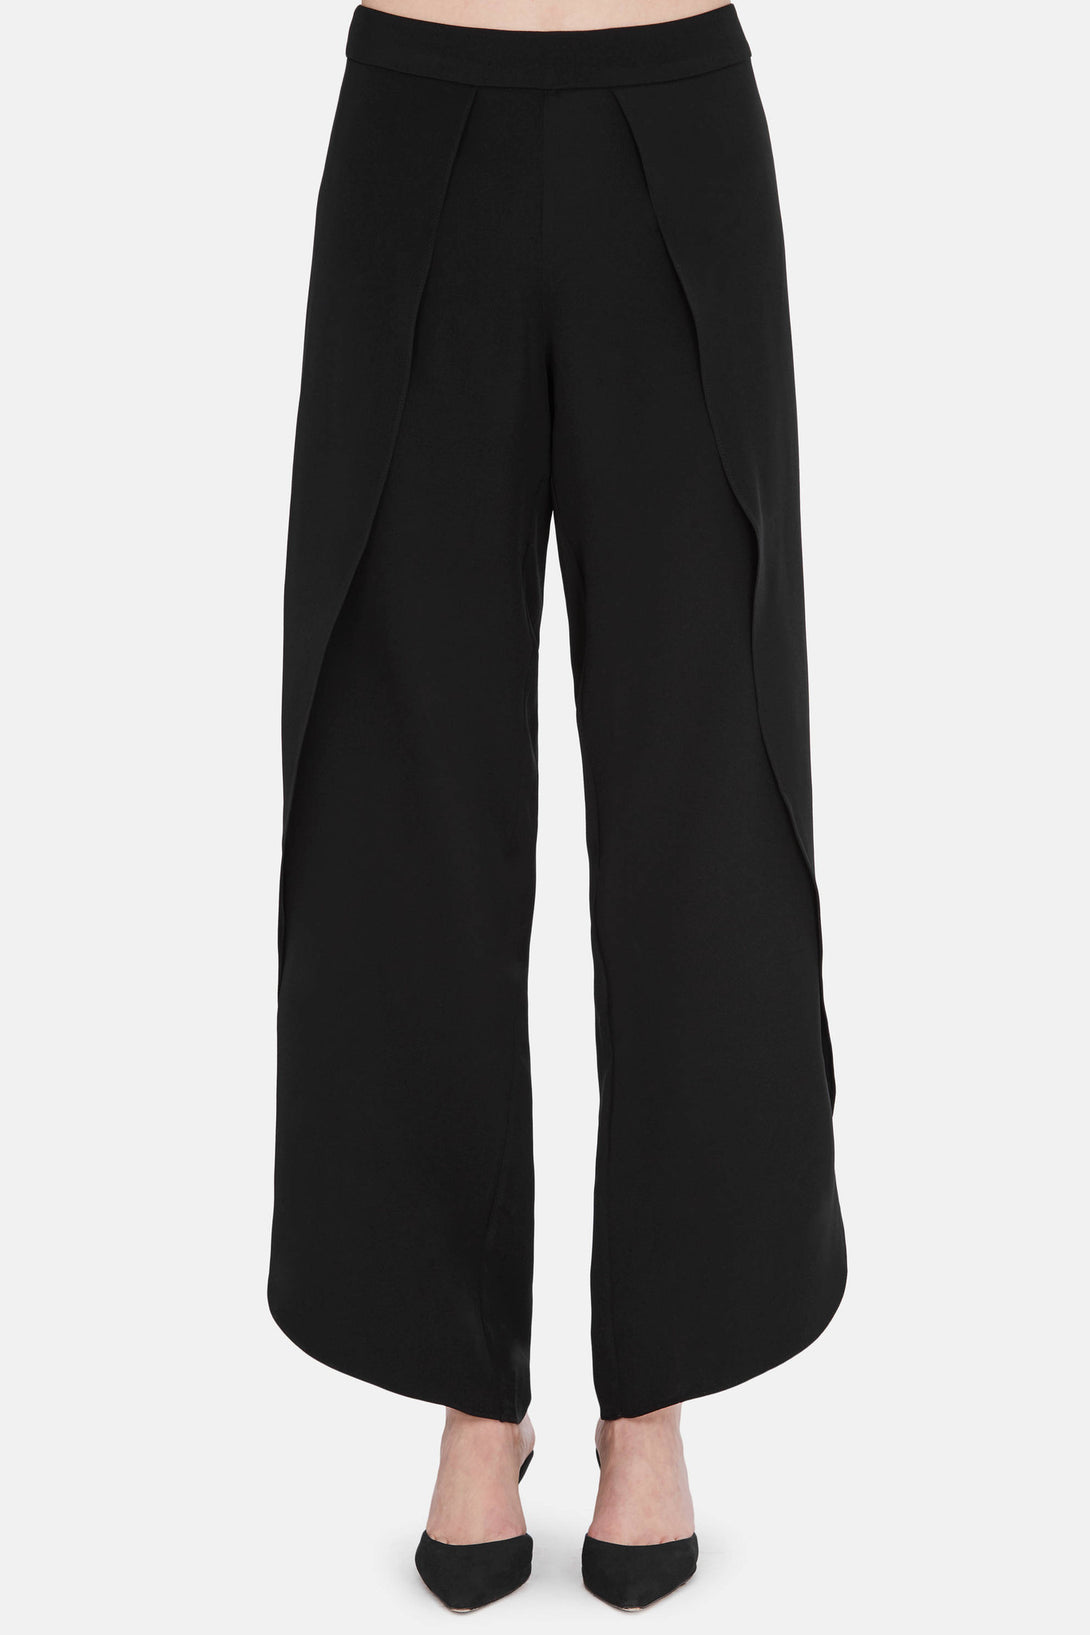 Toulon Trousers - Black